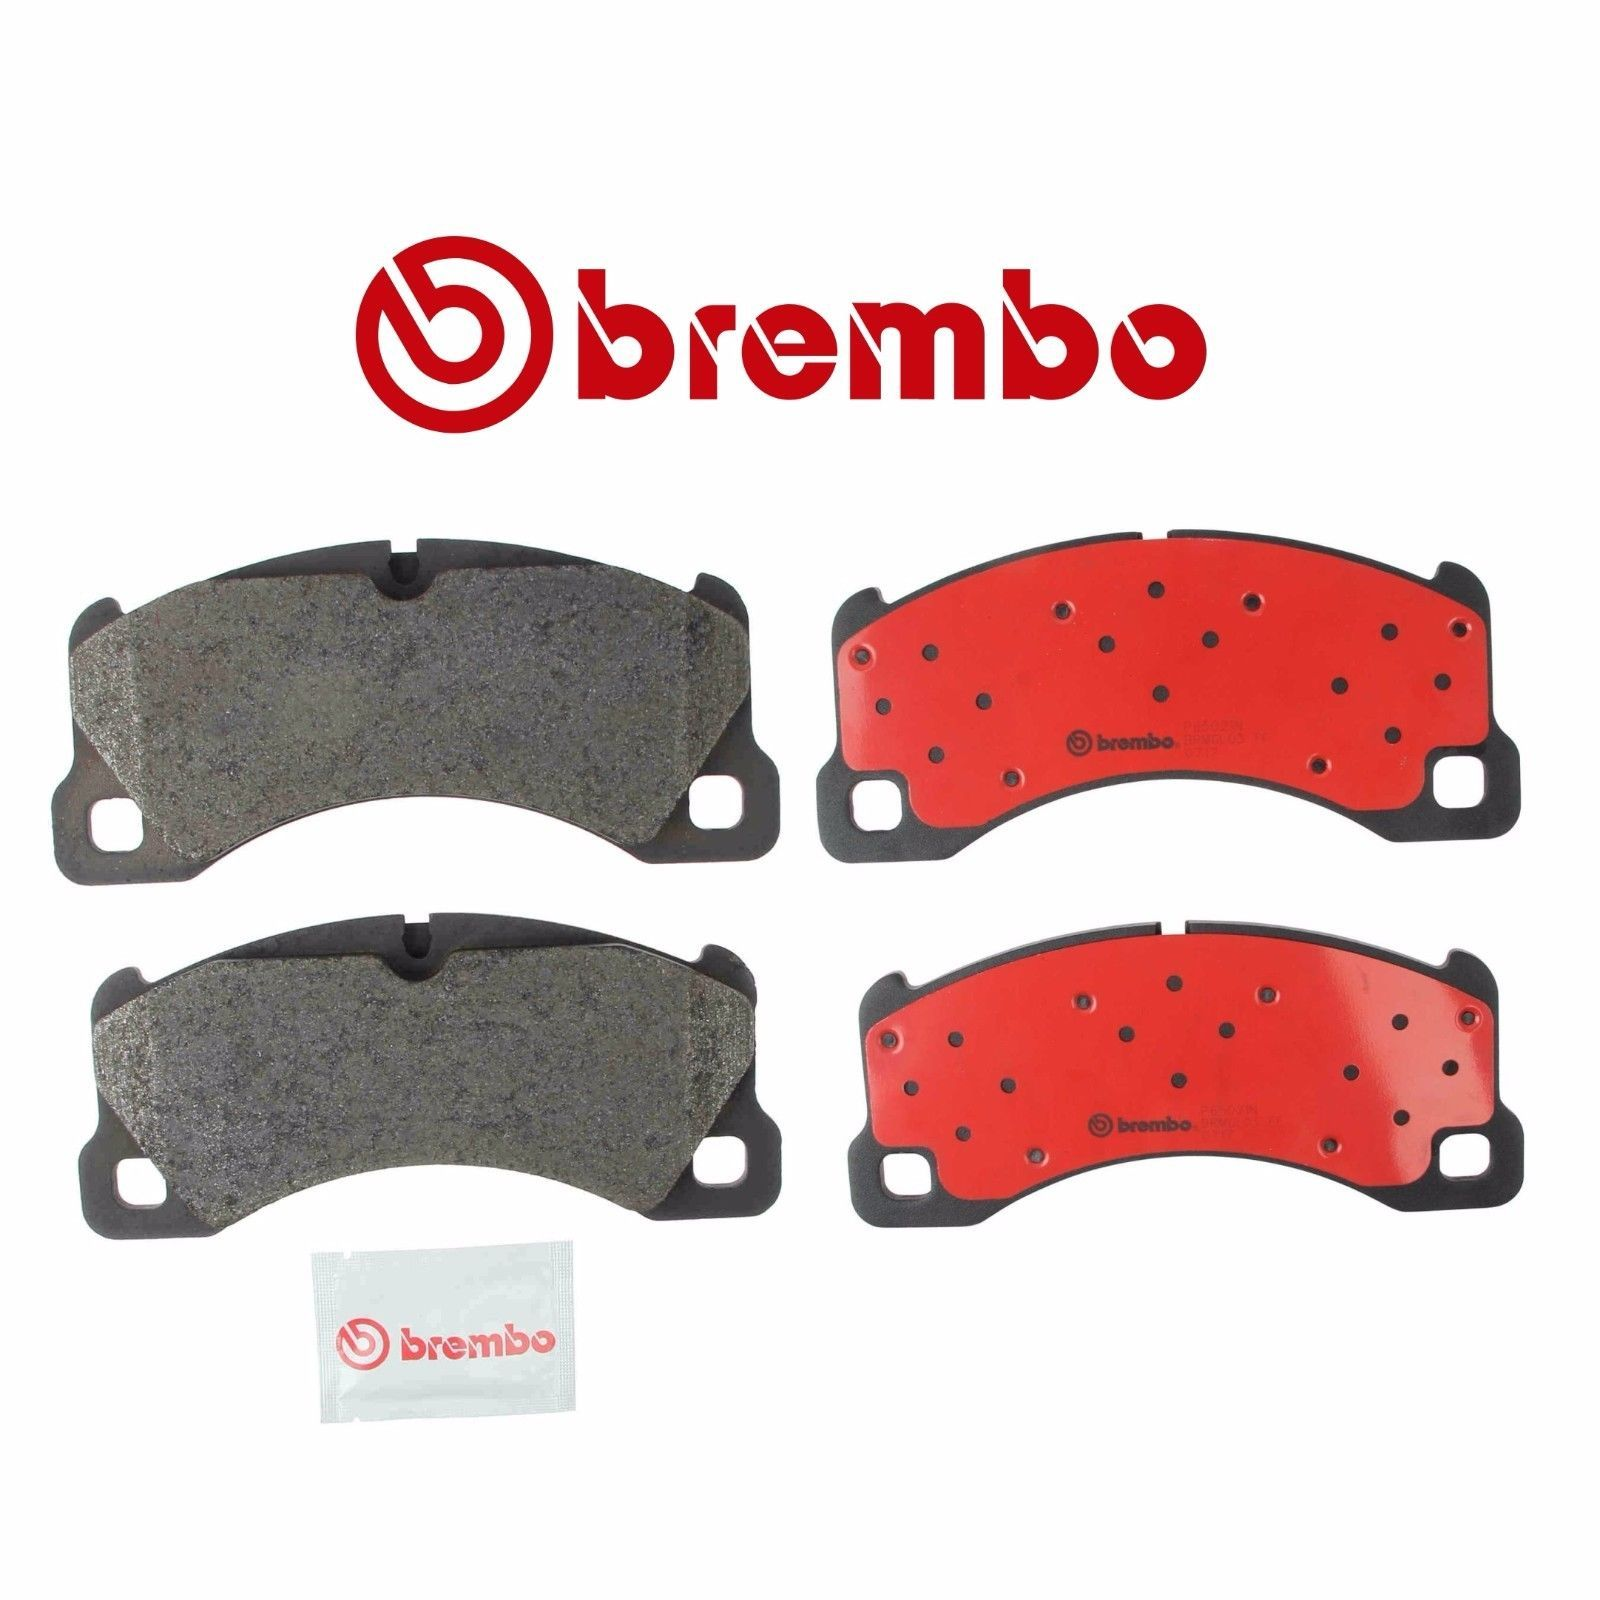 Rear Ceramic Brake Pads For 2011-2017 Porsche Cayenne 2011-2017 VW Touareg